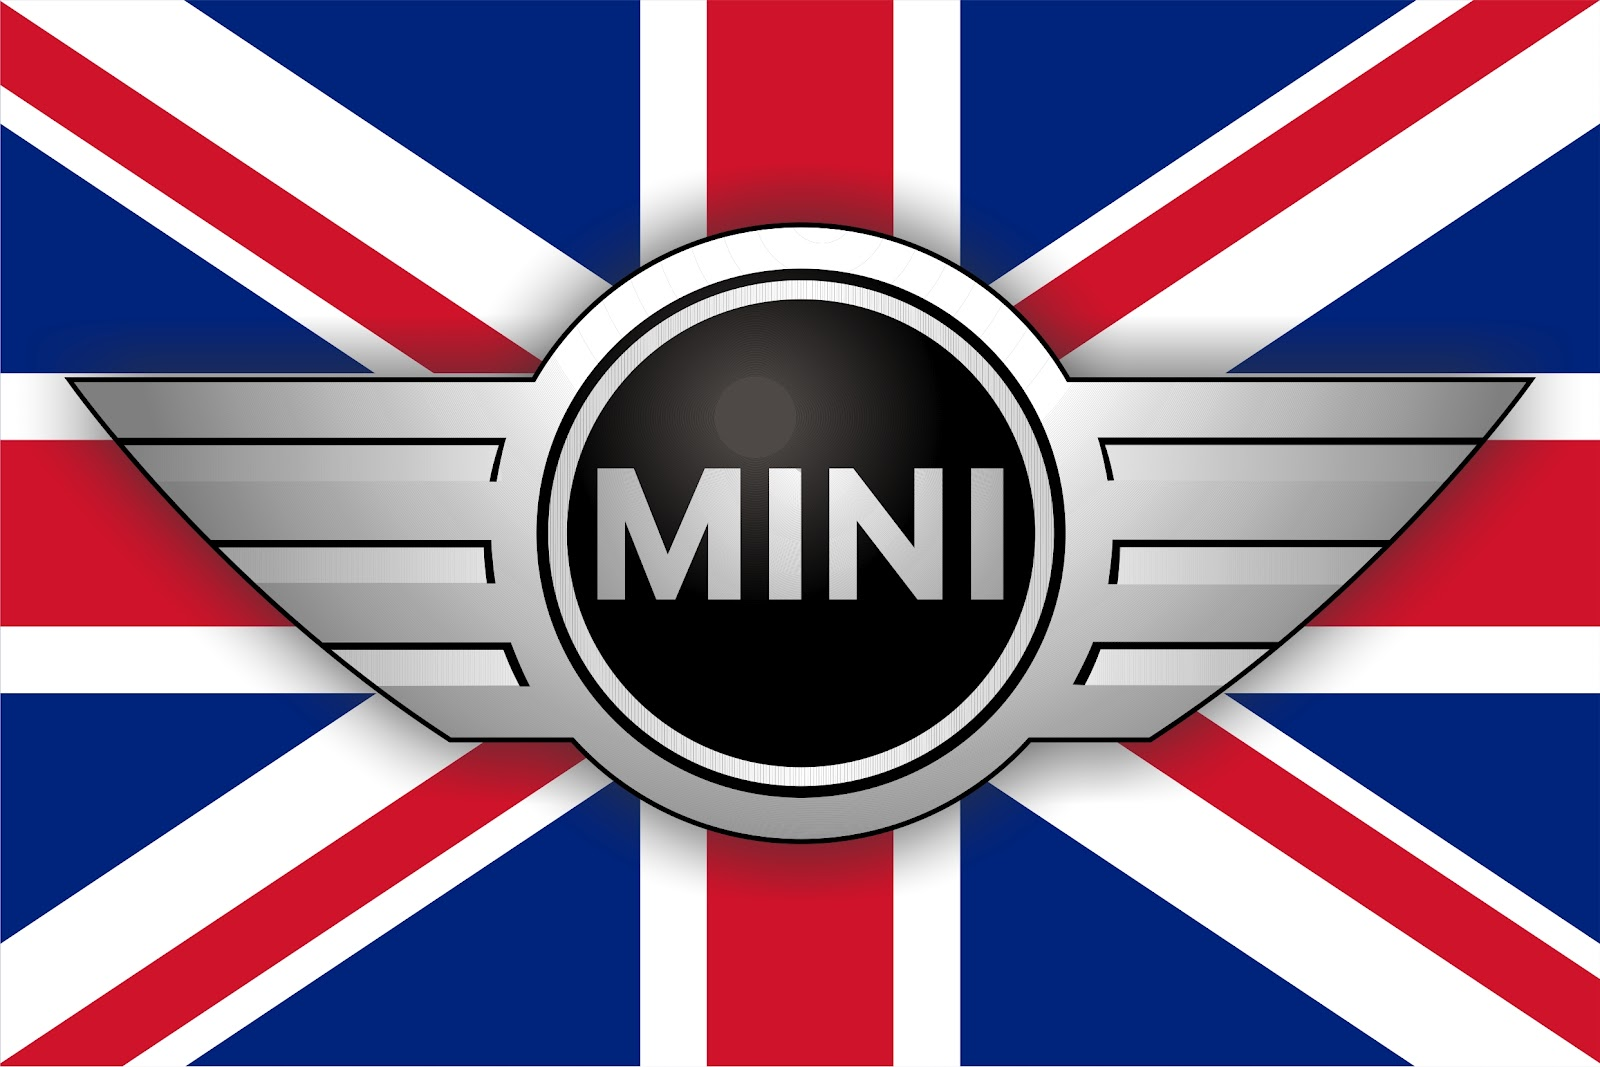 1000 Images About Mini Cooper On Pinterest Grand Prix